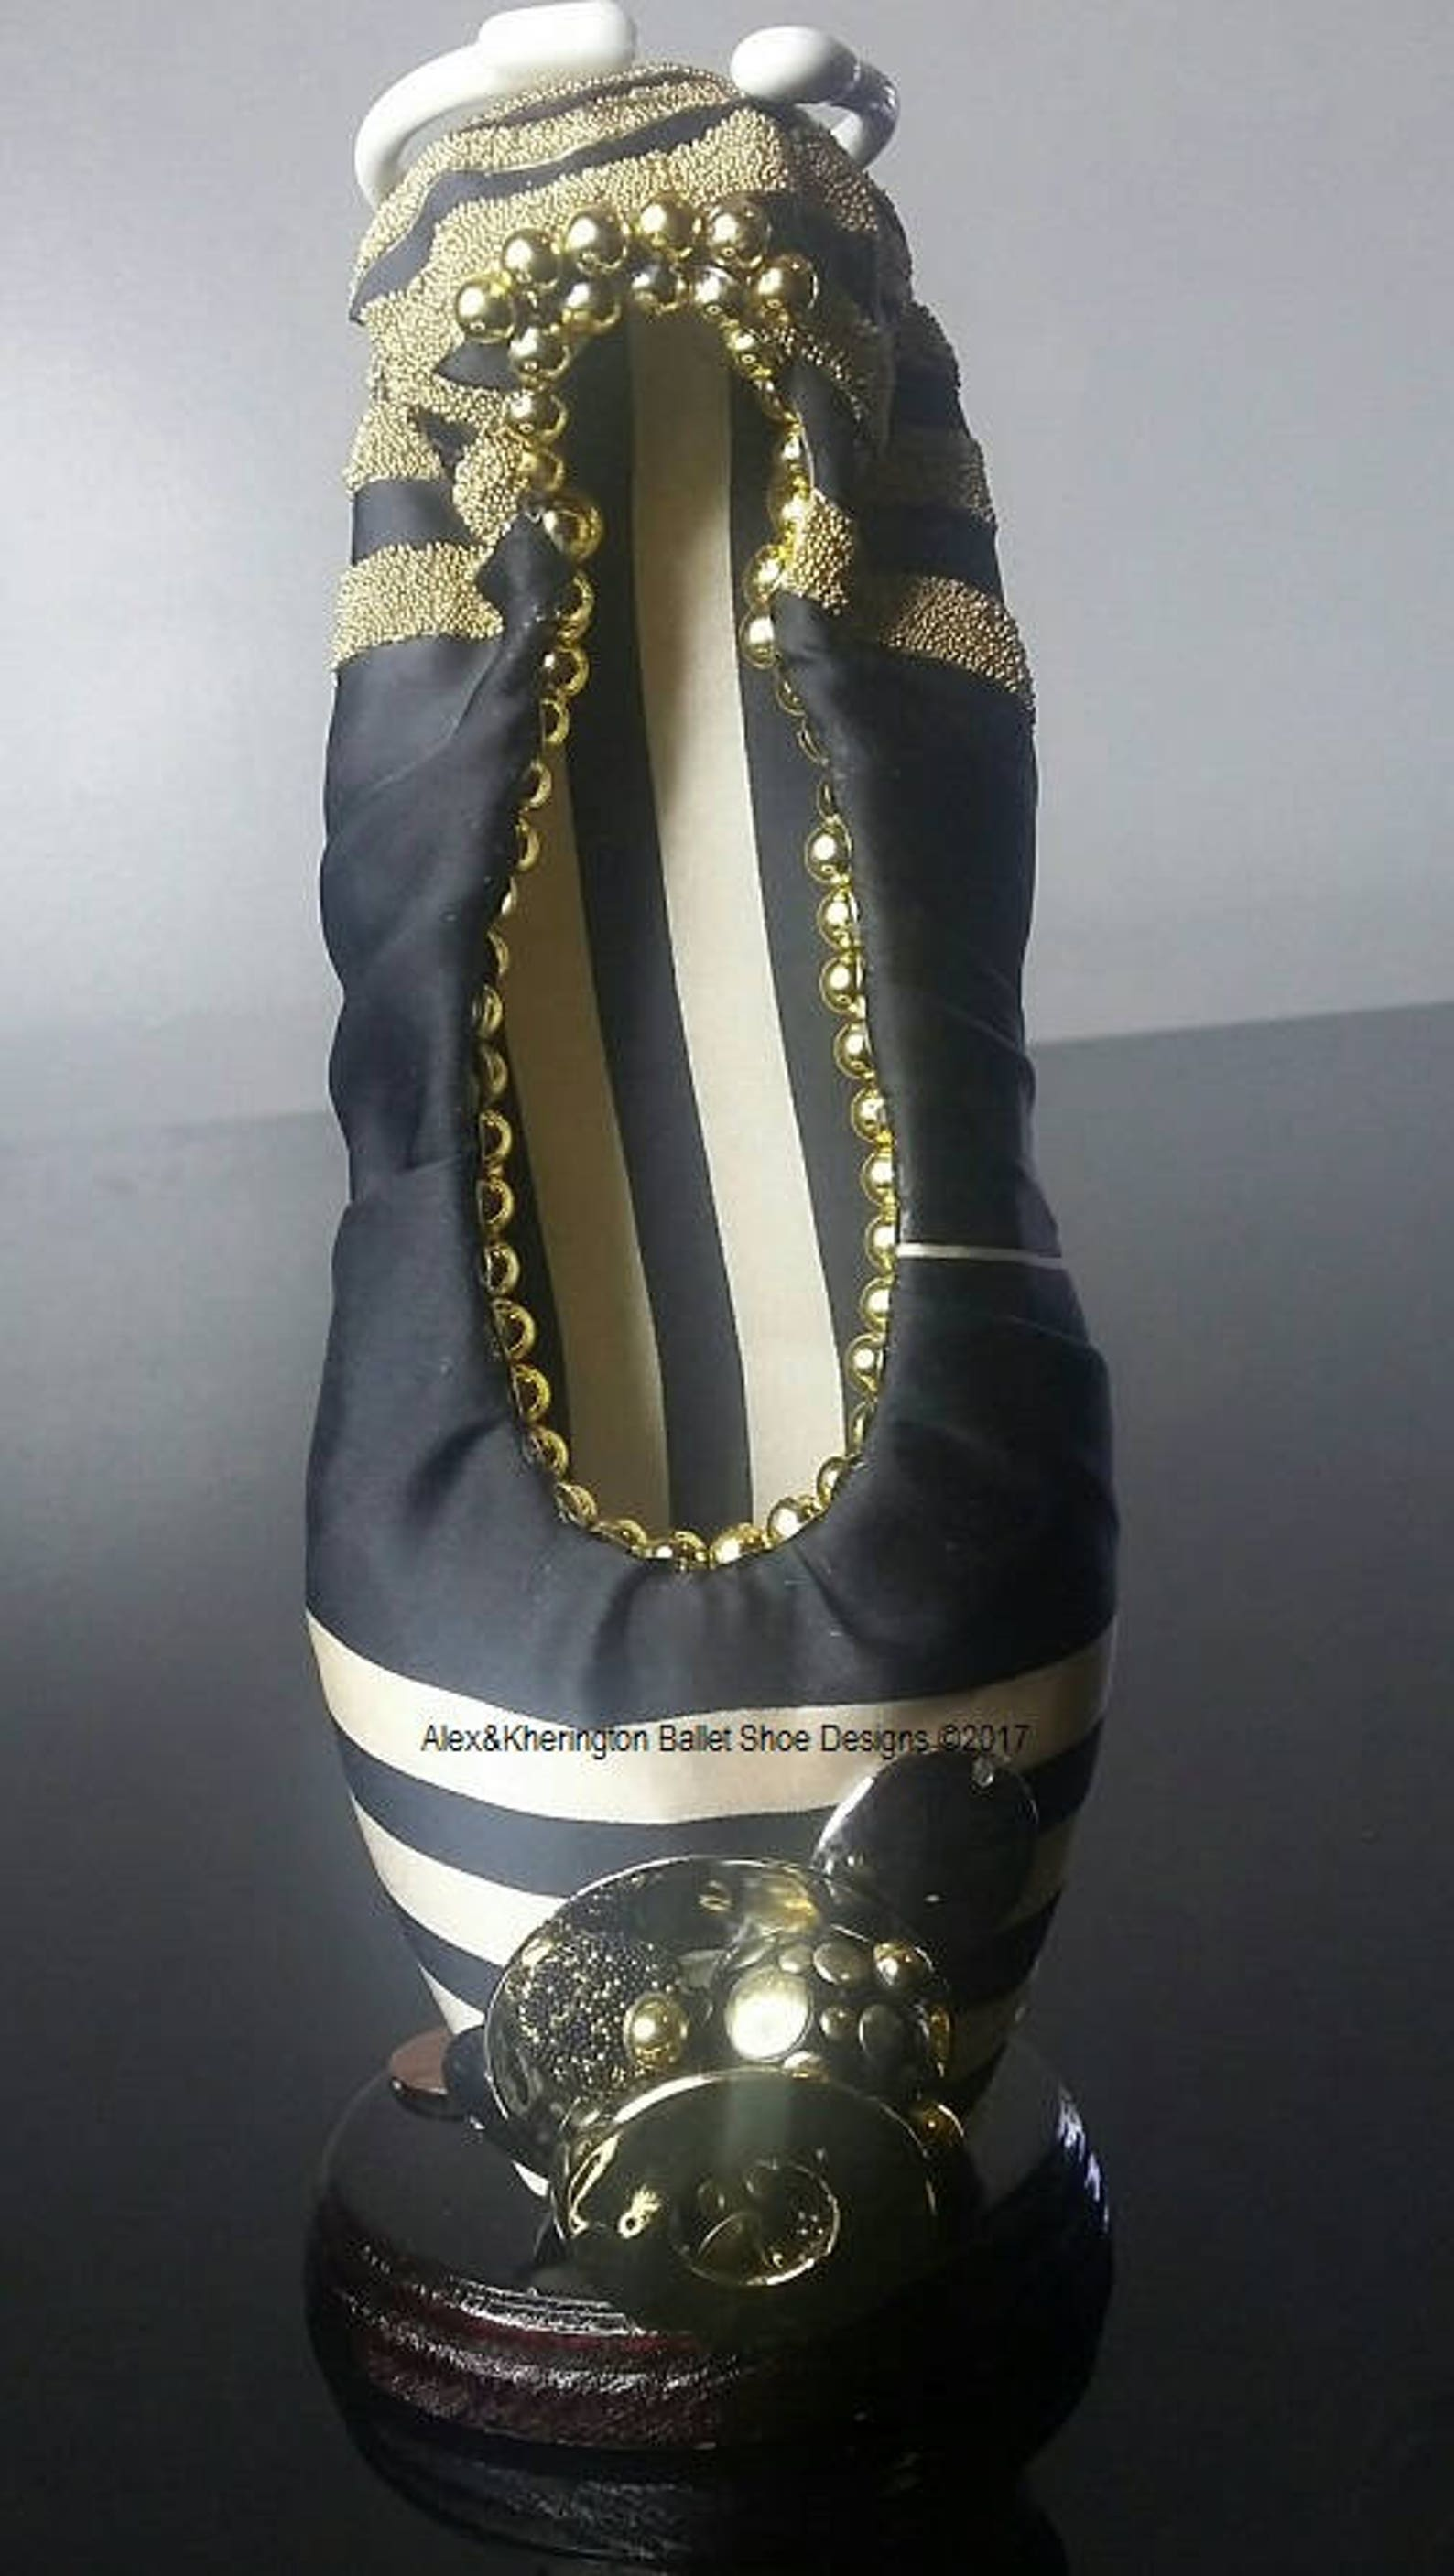 metal - alex & kherington ballet shoe designs, decorated pointe shoes